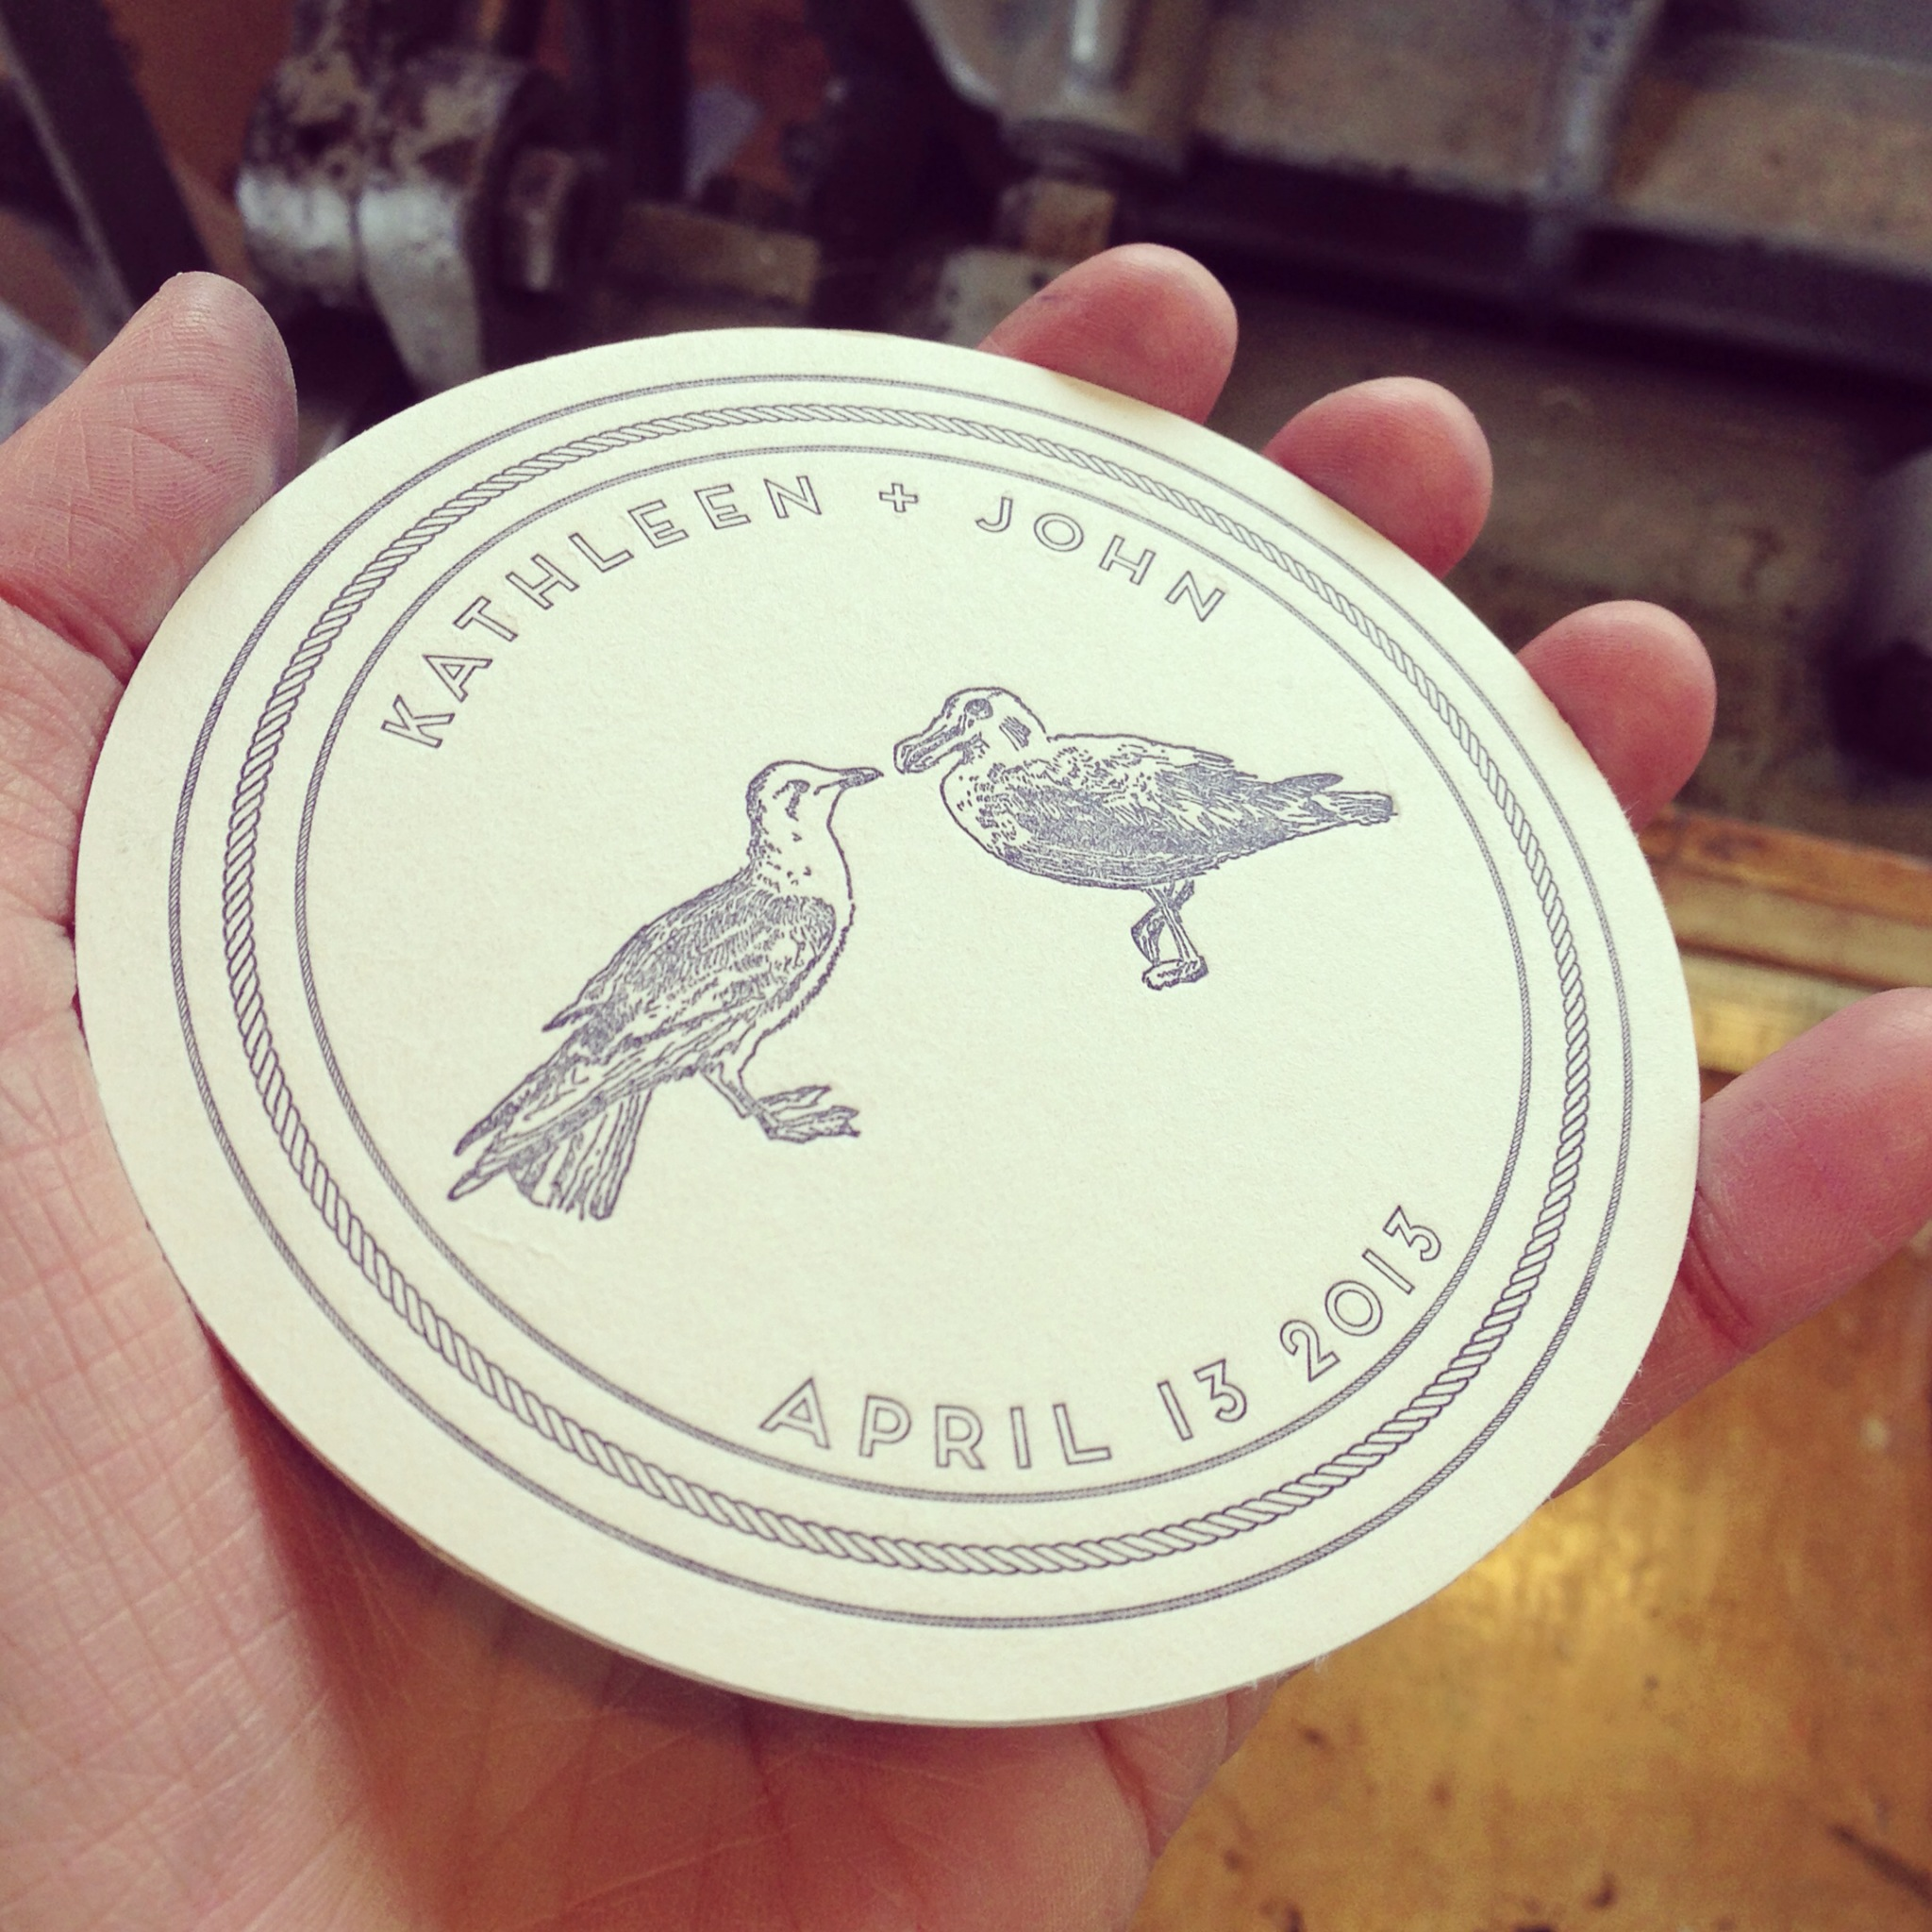 Coasters to match her theme, featuring the drawing by her brother, Matt Sander.